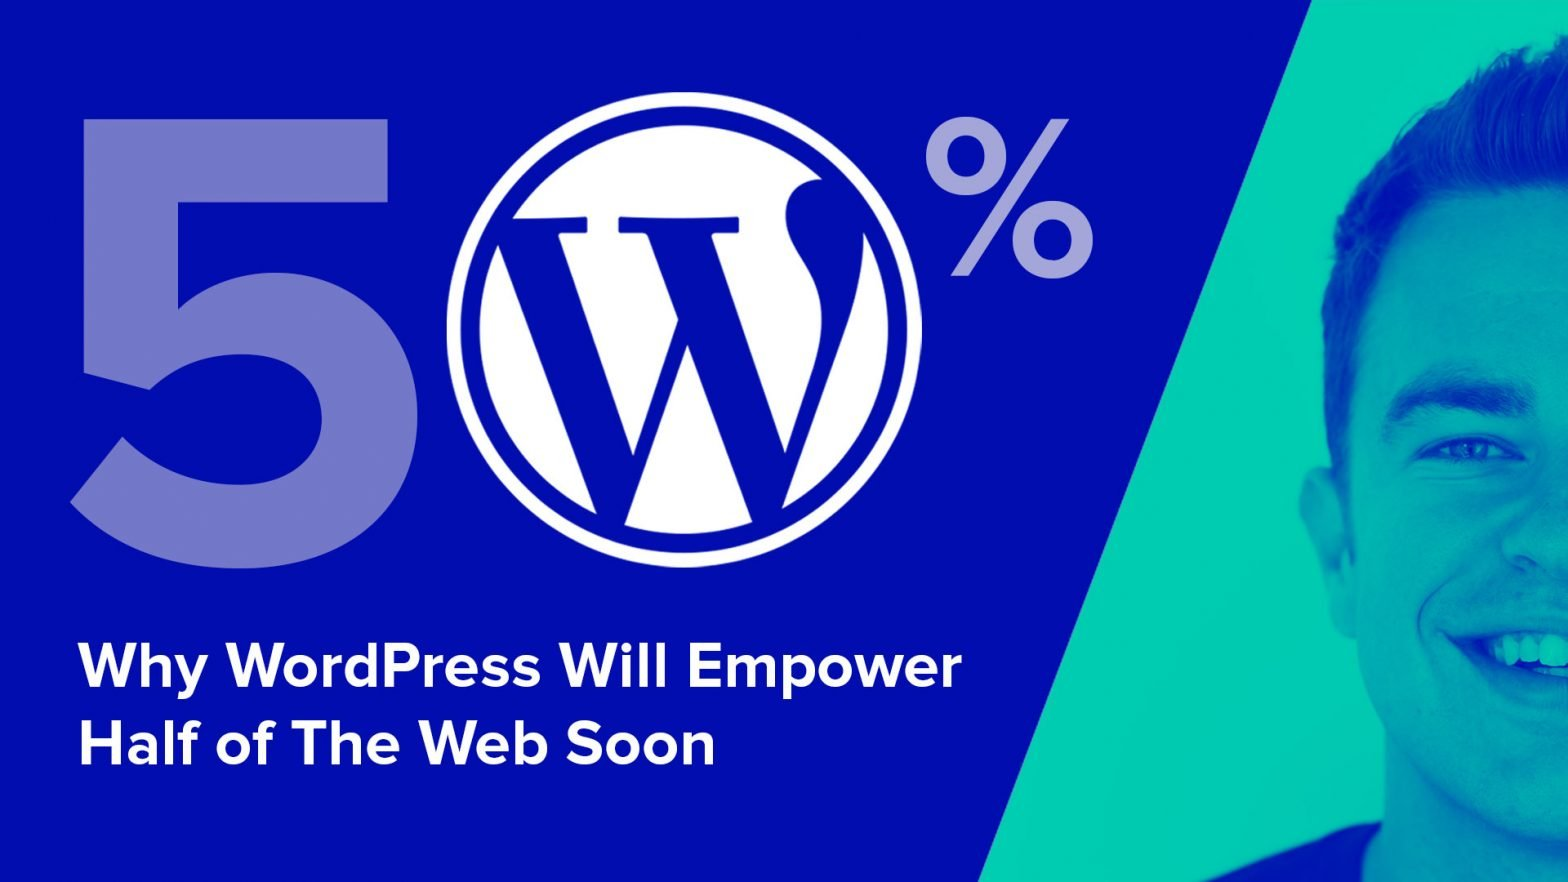 Why WordPress Will Empower Half of the Web Soon - Sebastiaan van der Lans